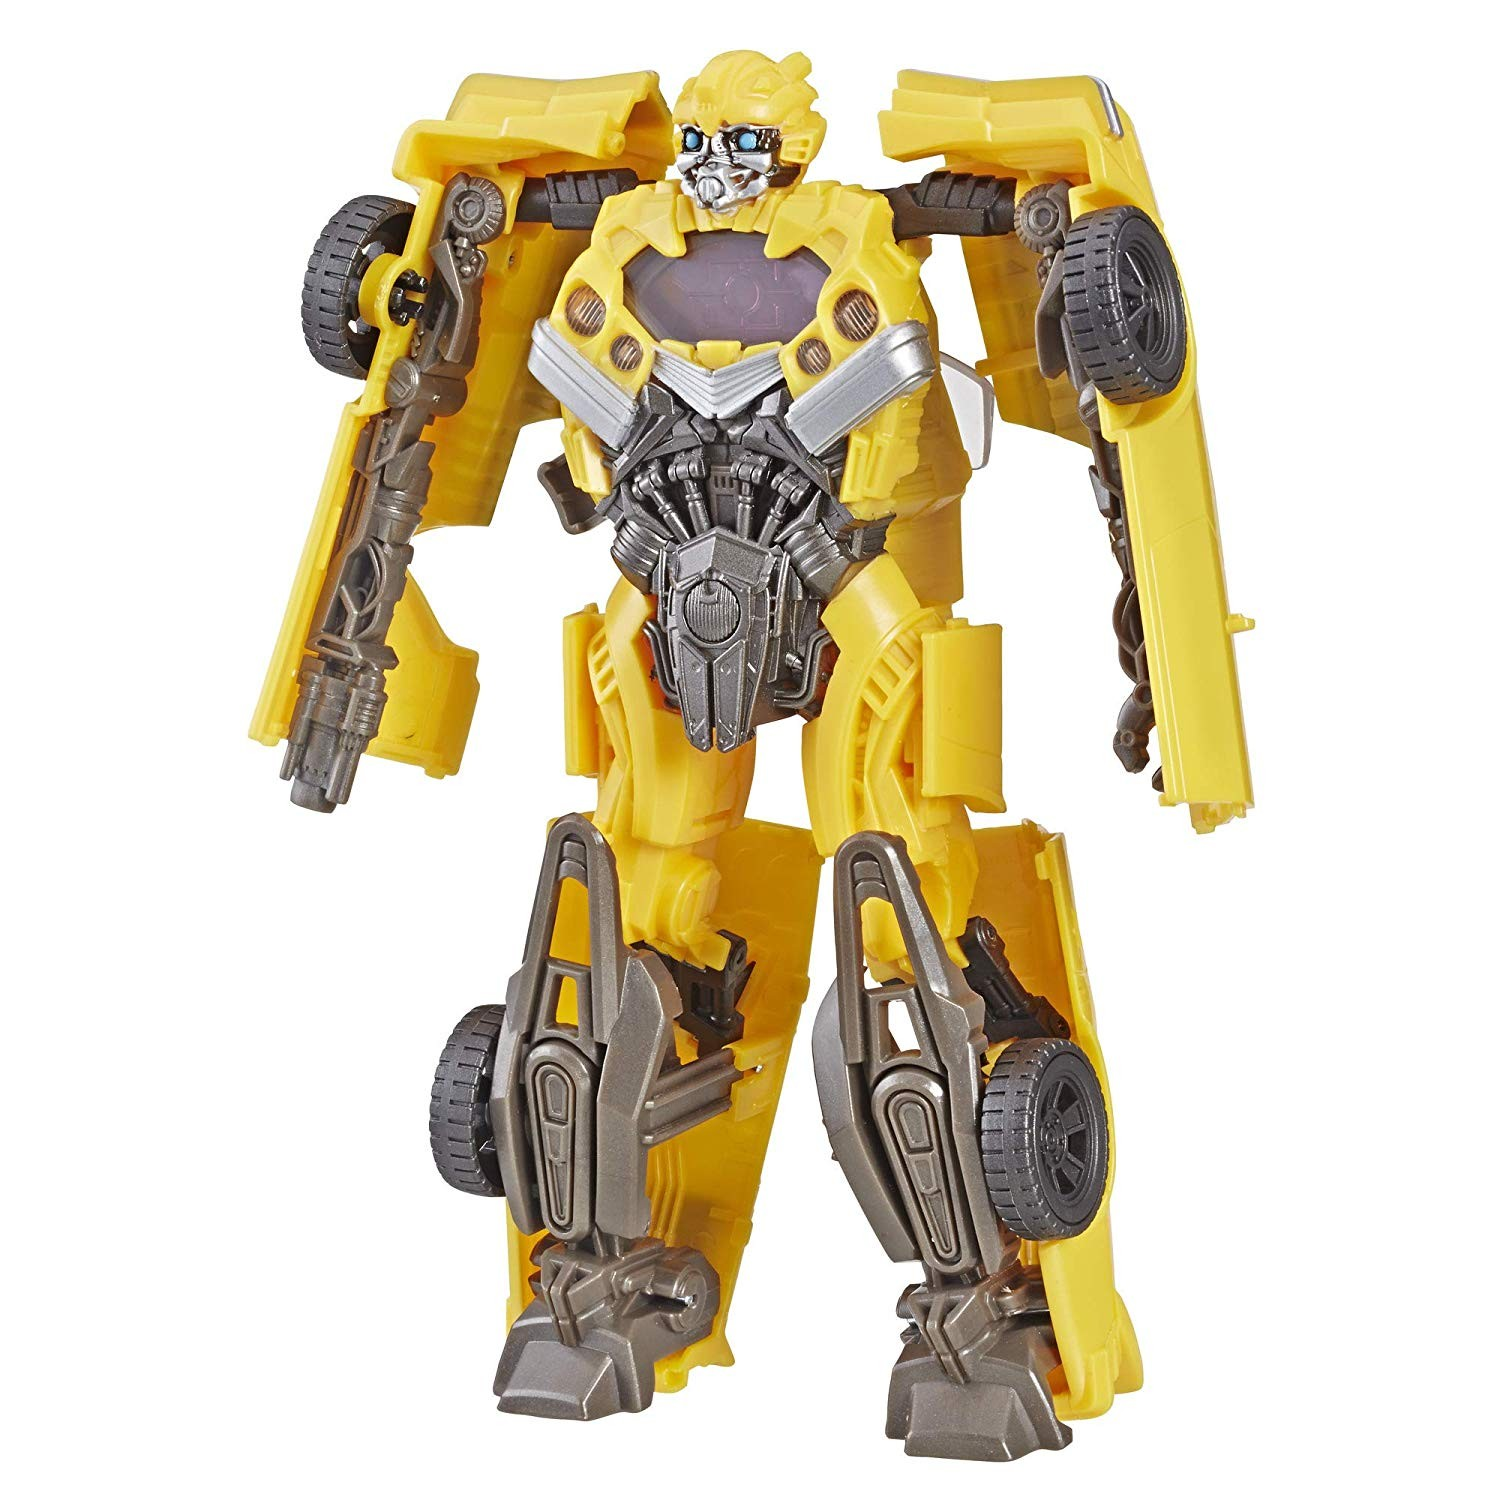 Transformers News: Transformers Bumblebee Mission Vision Bumblebee and Shatter revealed